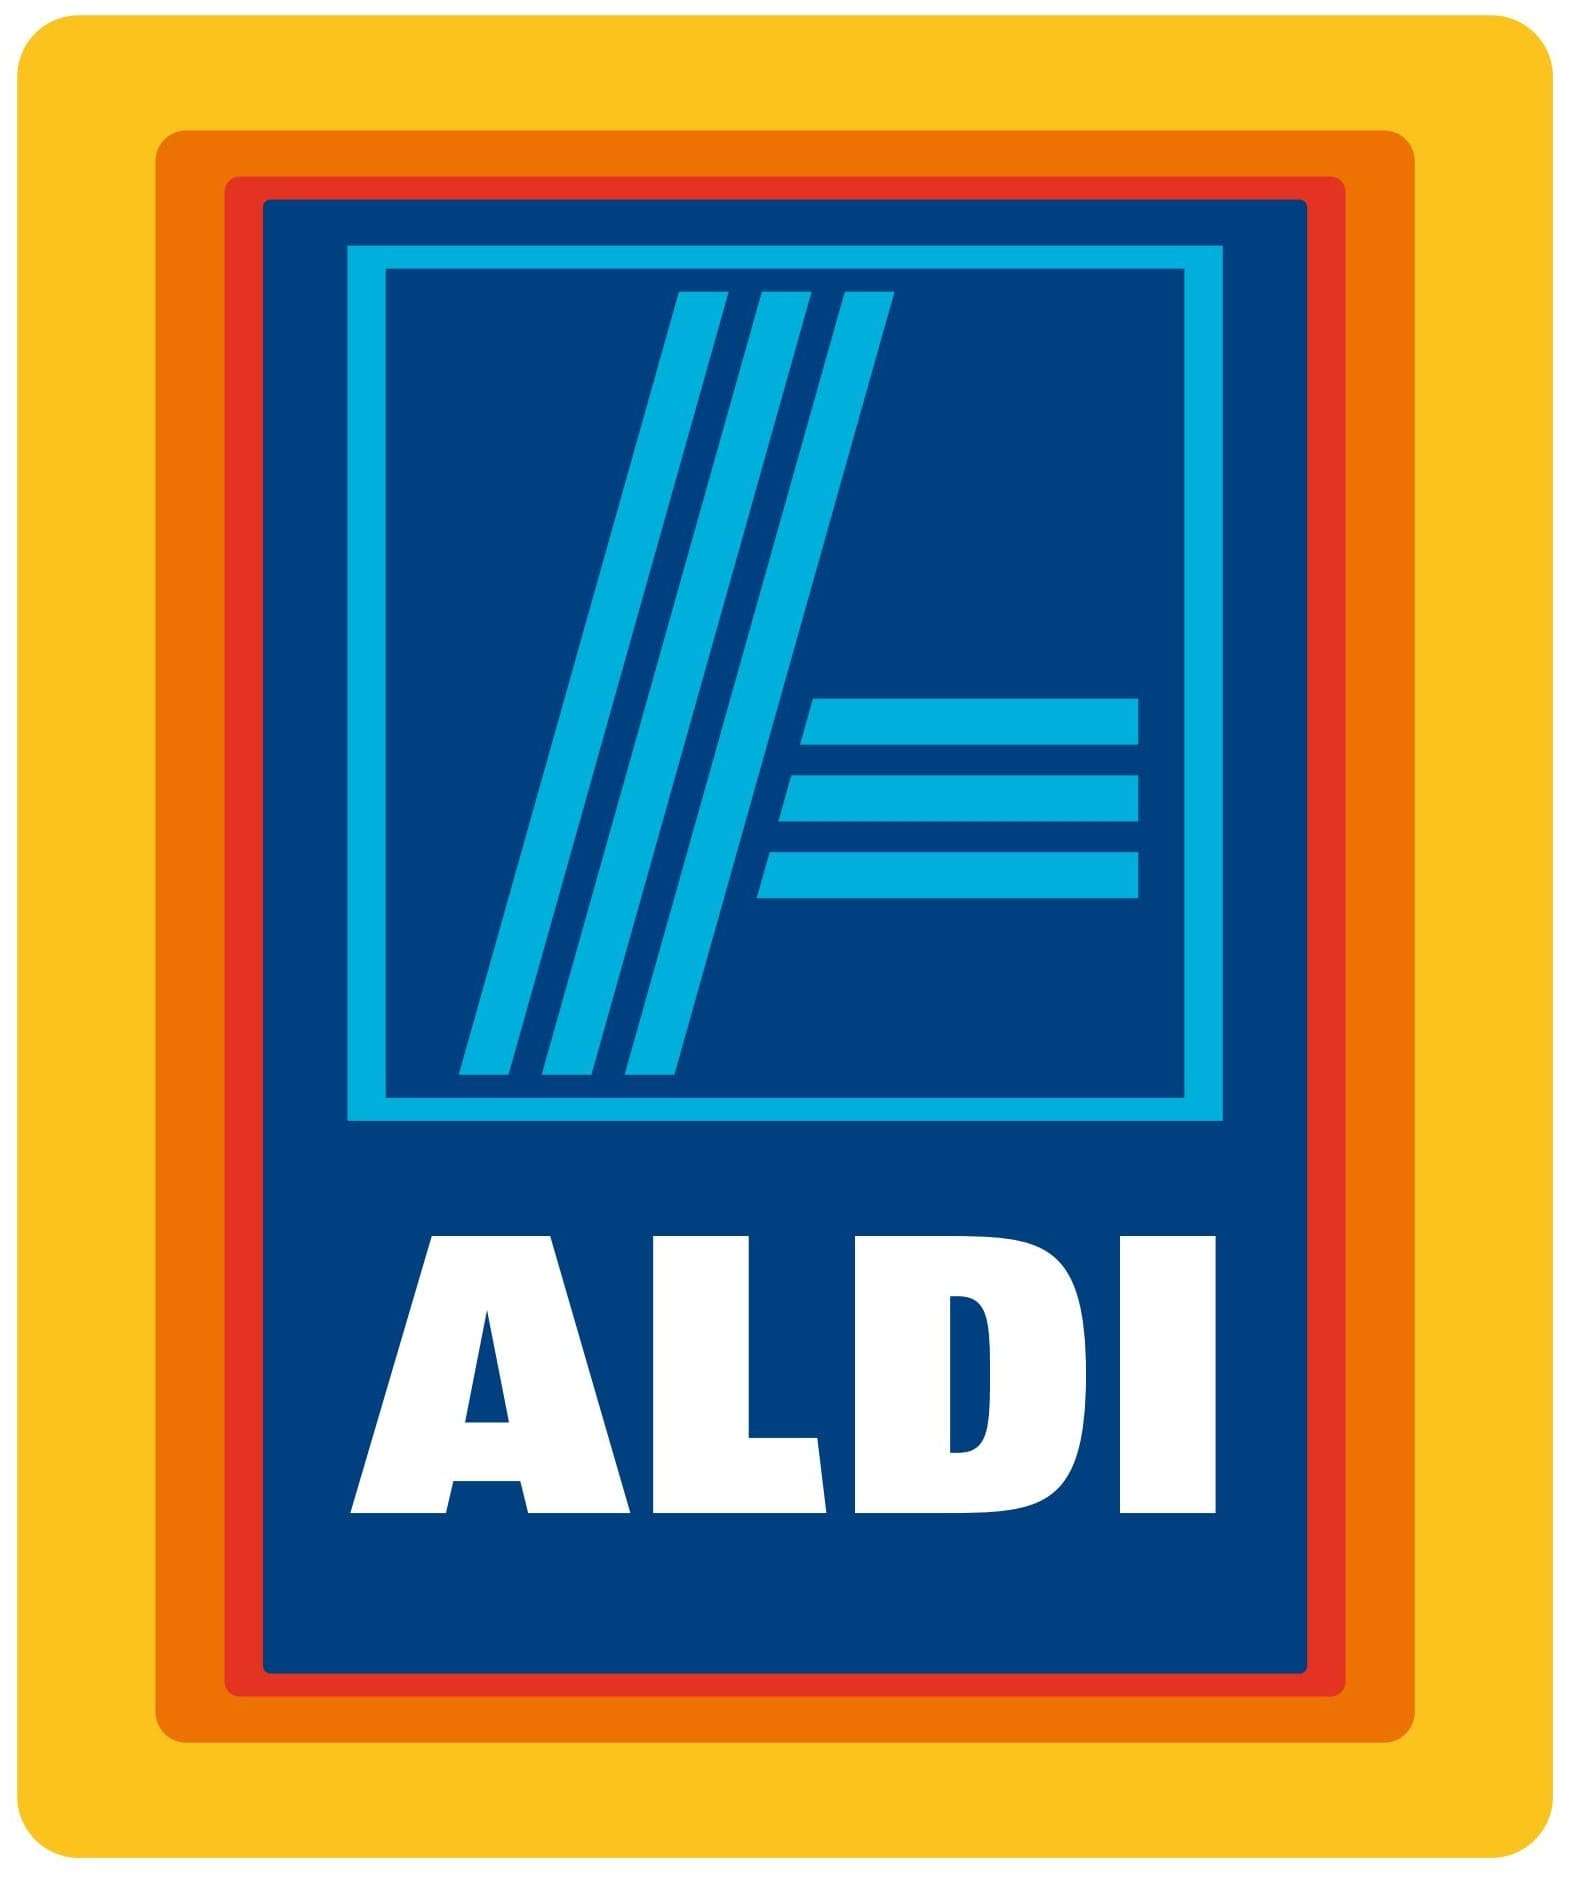 Aldi Logo [PDF] Download Vector.